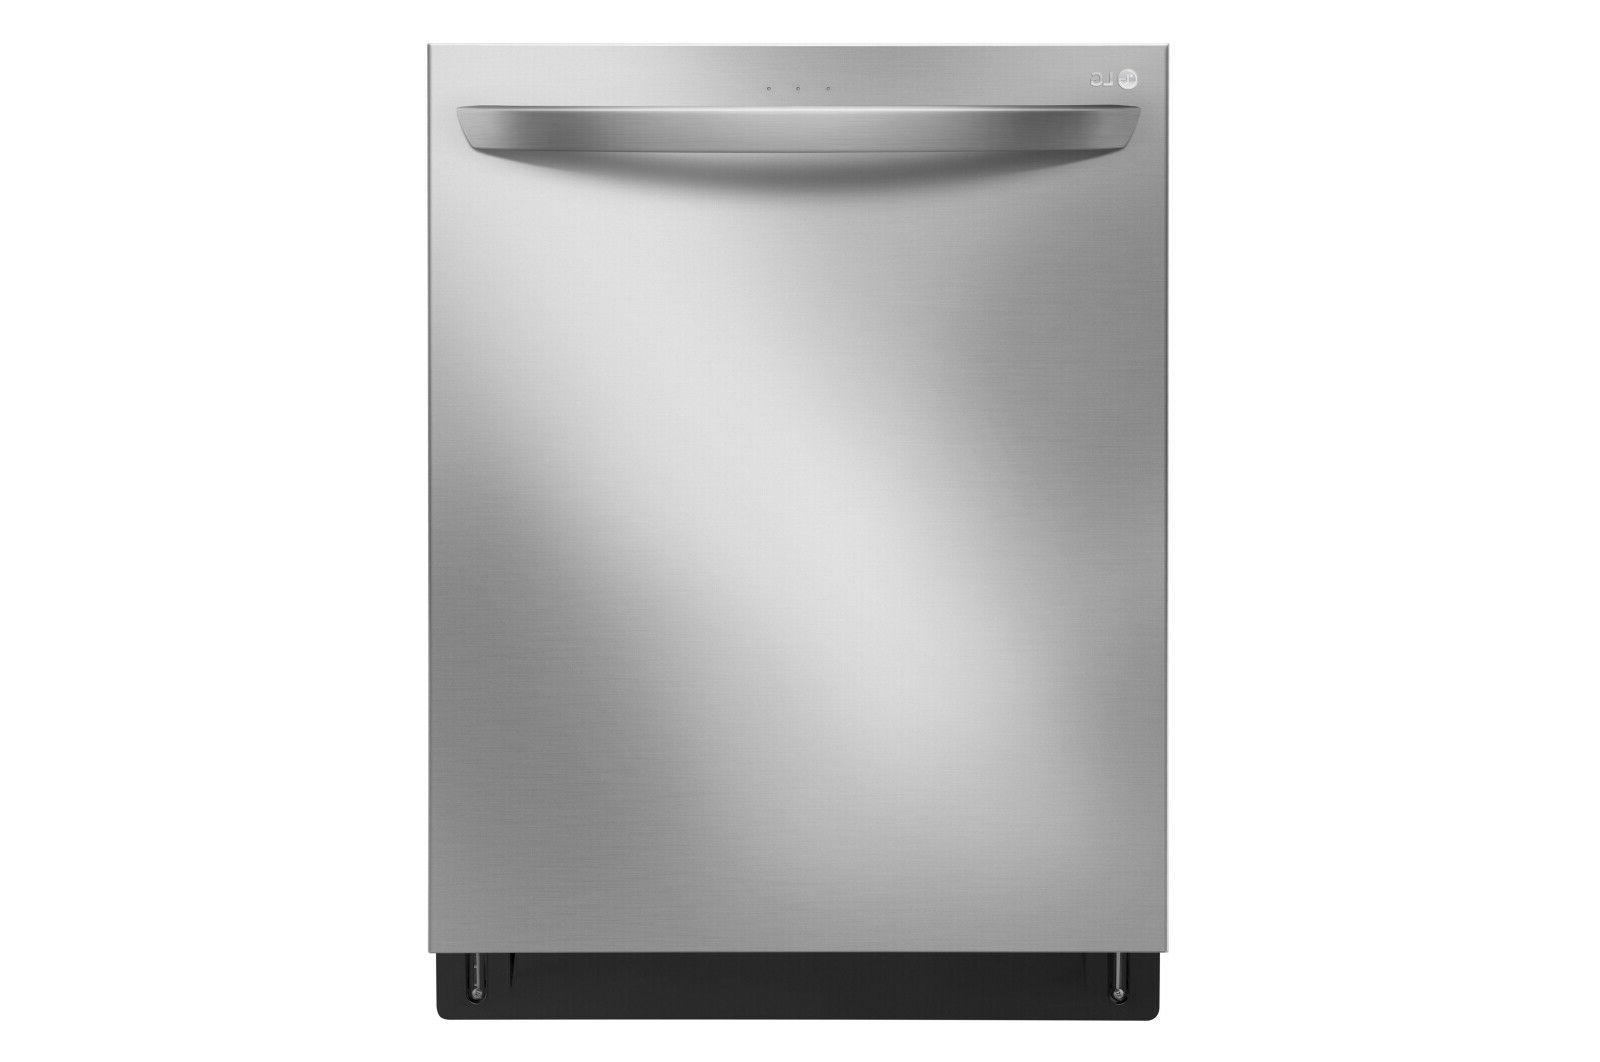 ldt7797st 24 stainless fully integrated dishwasher